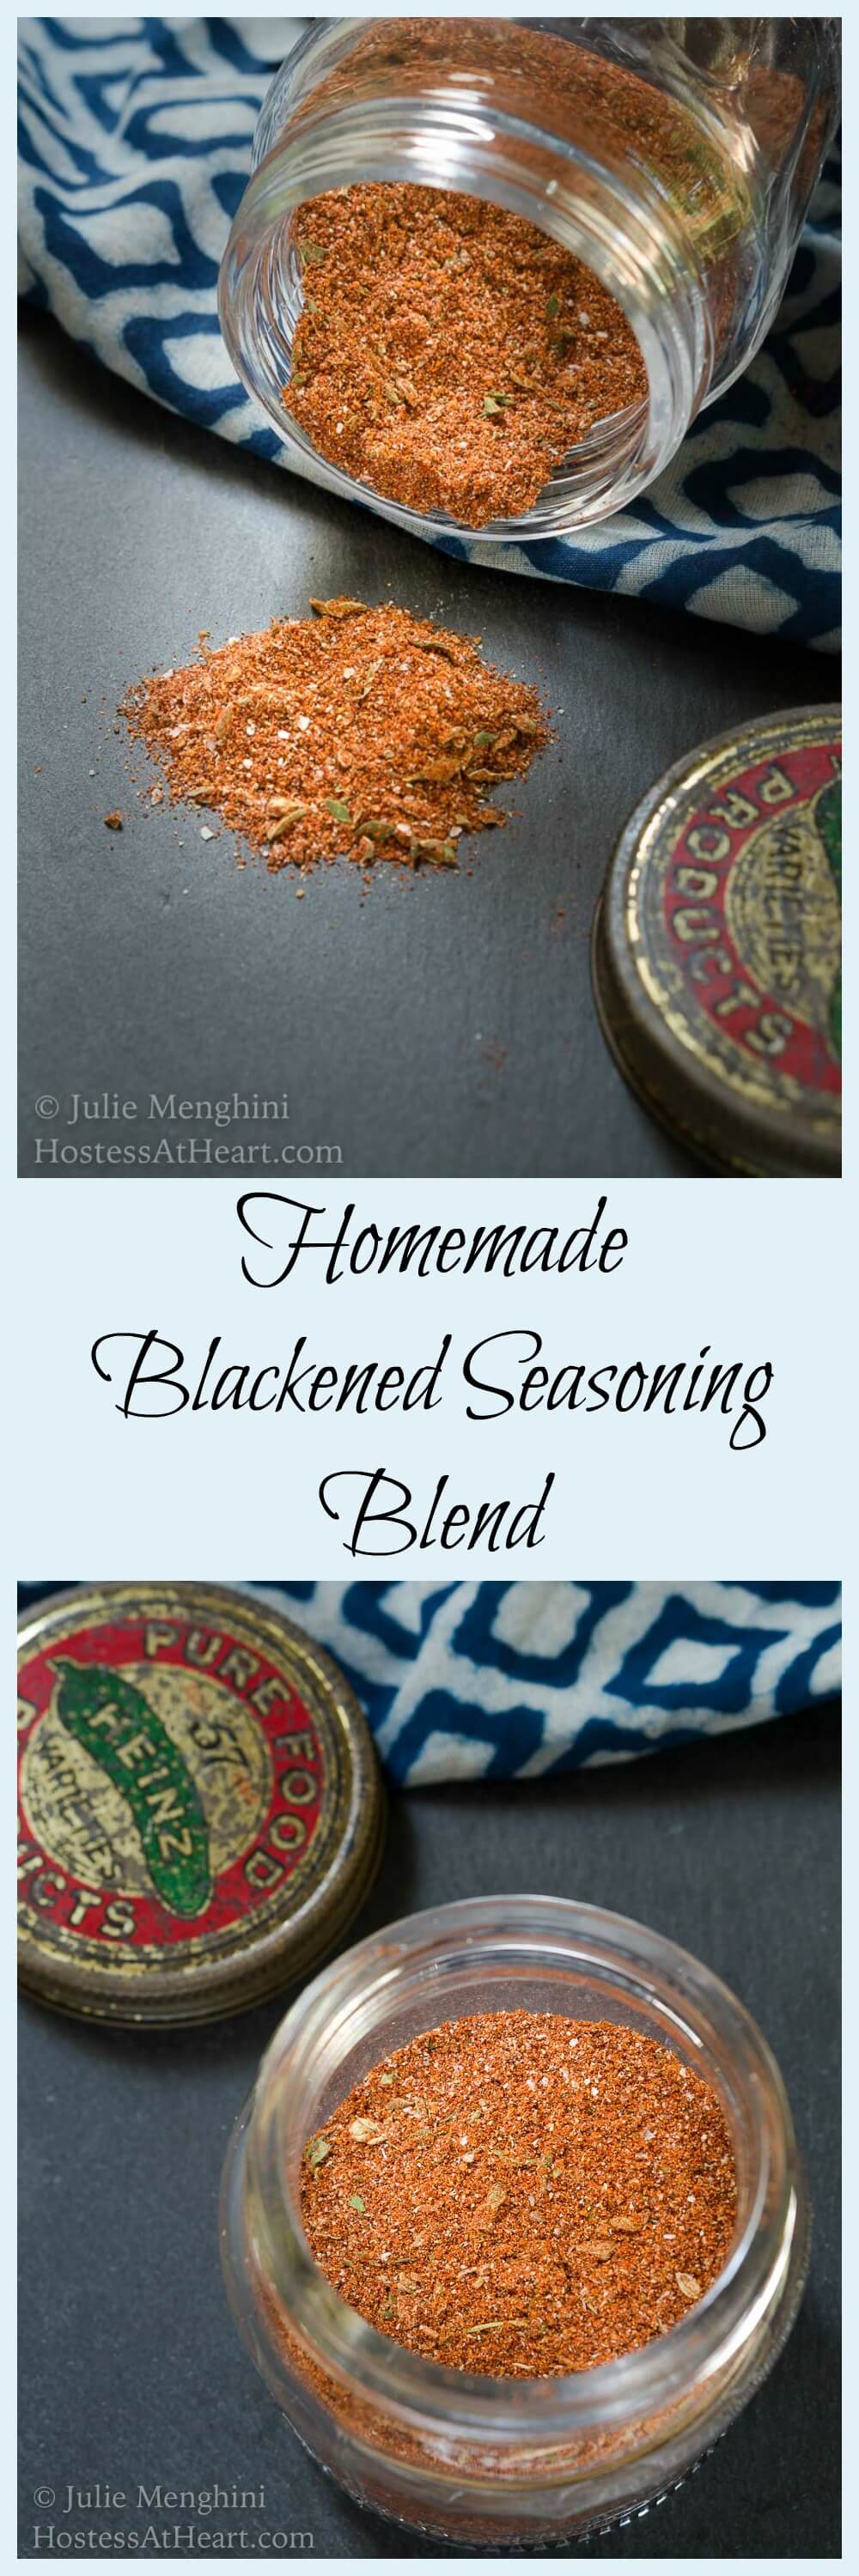 This Homemade Blackened Seasoning Blend is full of fiery spices and herbs.  It is great on meat, fish, veggies, and soups and works great as a marinade or dry rub too! It's got a great flavor followed by a bit of a kick |  HostessAtHeart.com  #blackenedseasoning #easyrecipe #quickrecipe #cajunrecipe #cajunseasoning